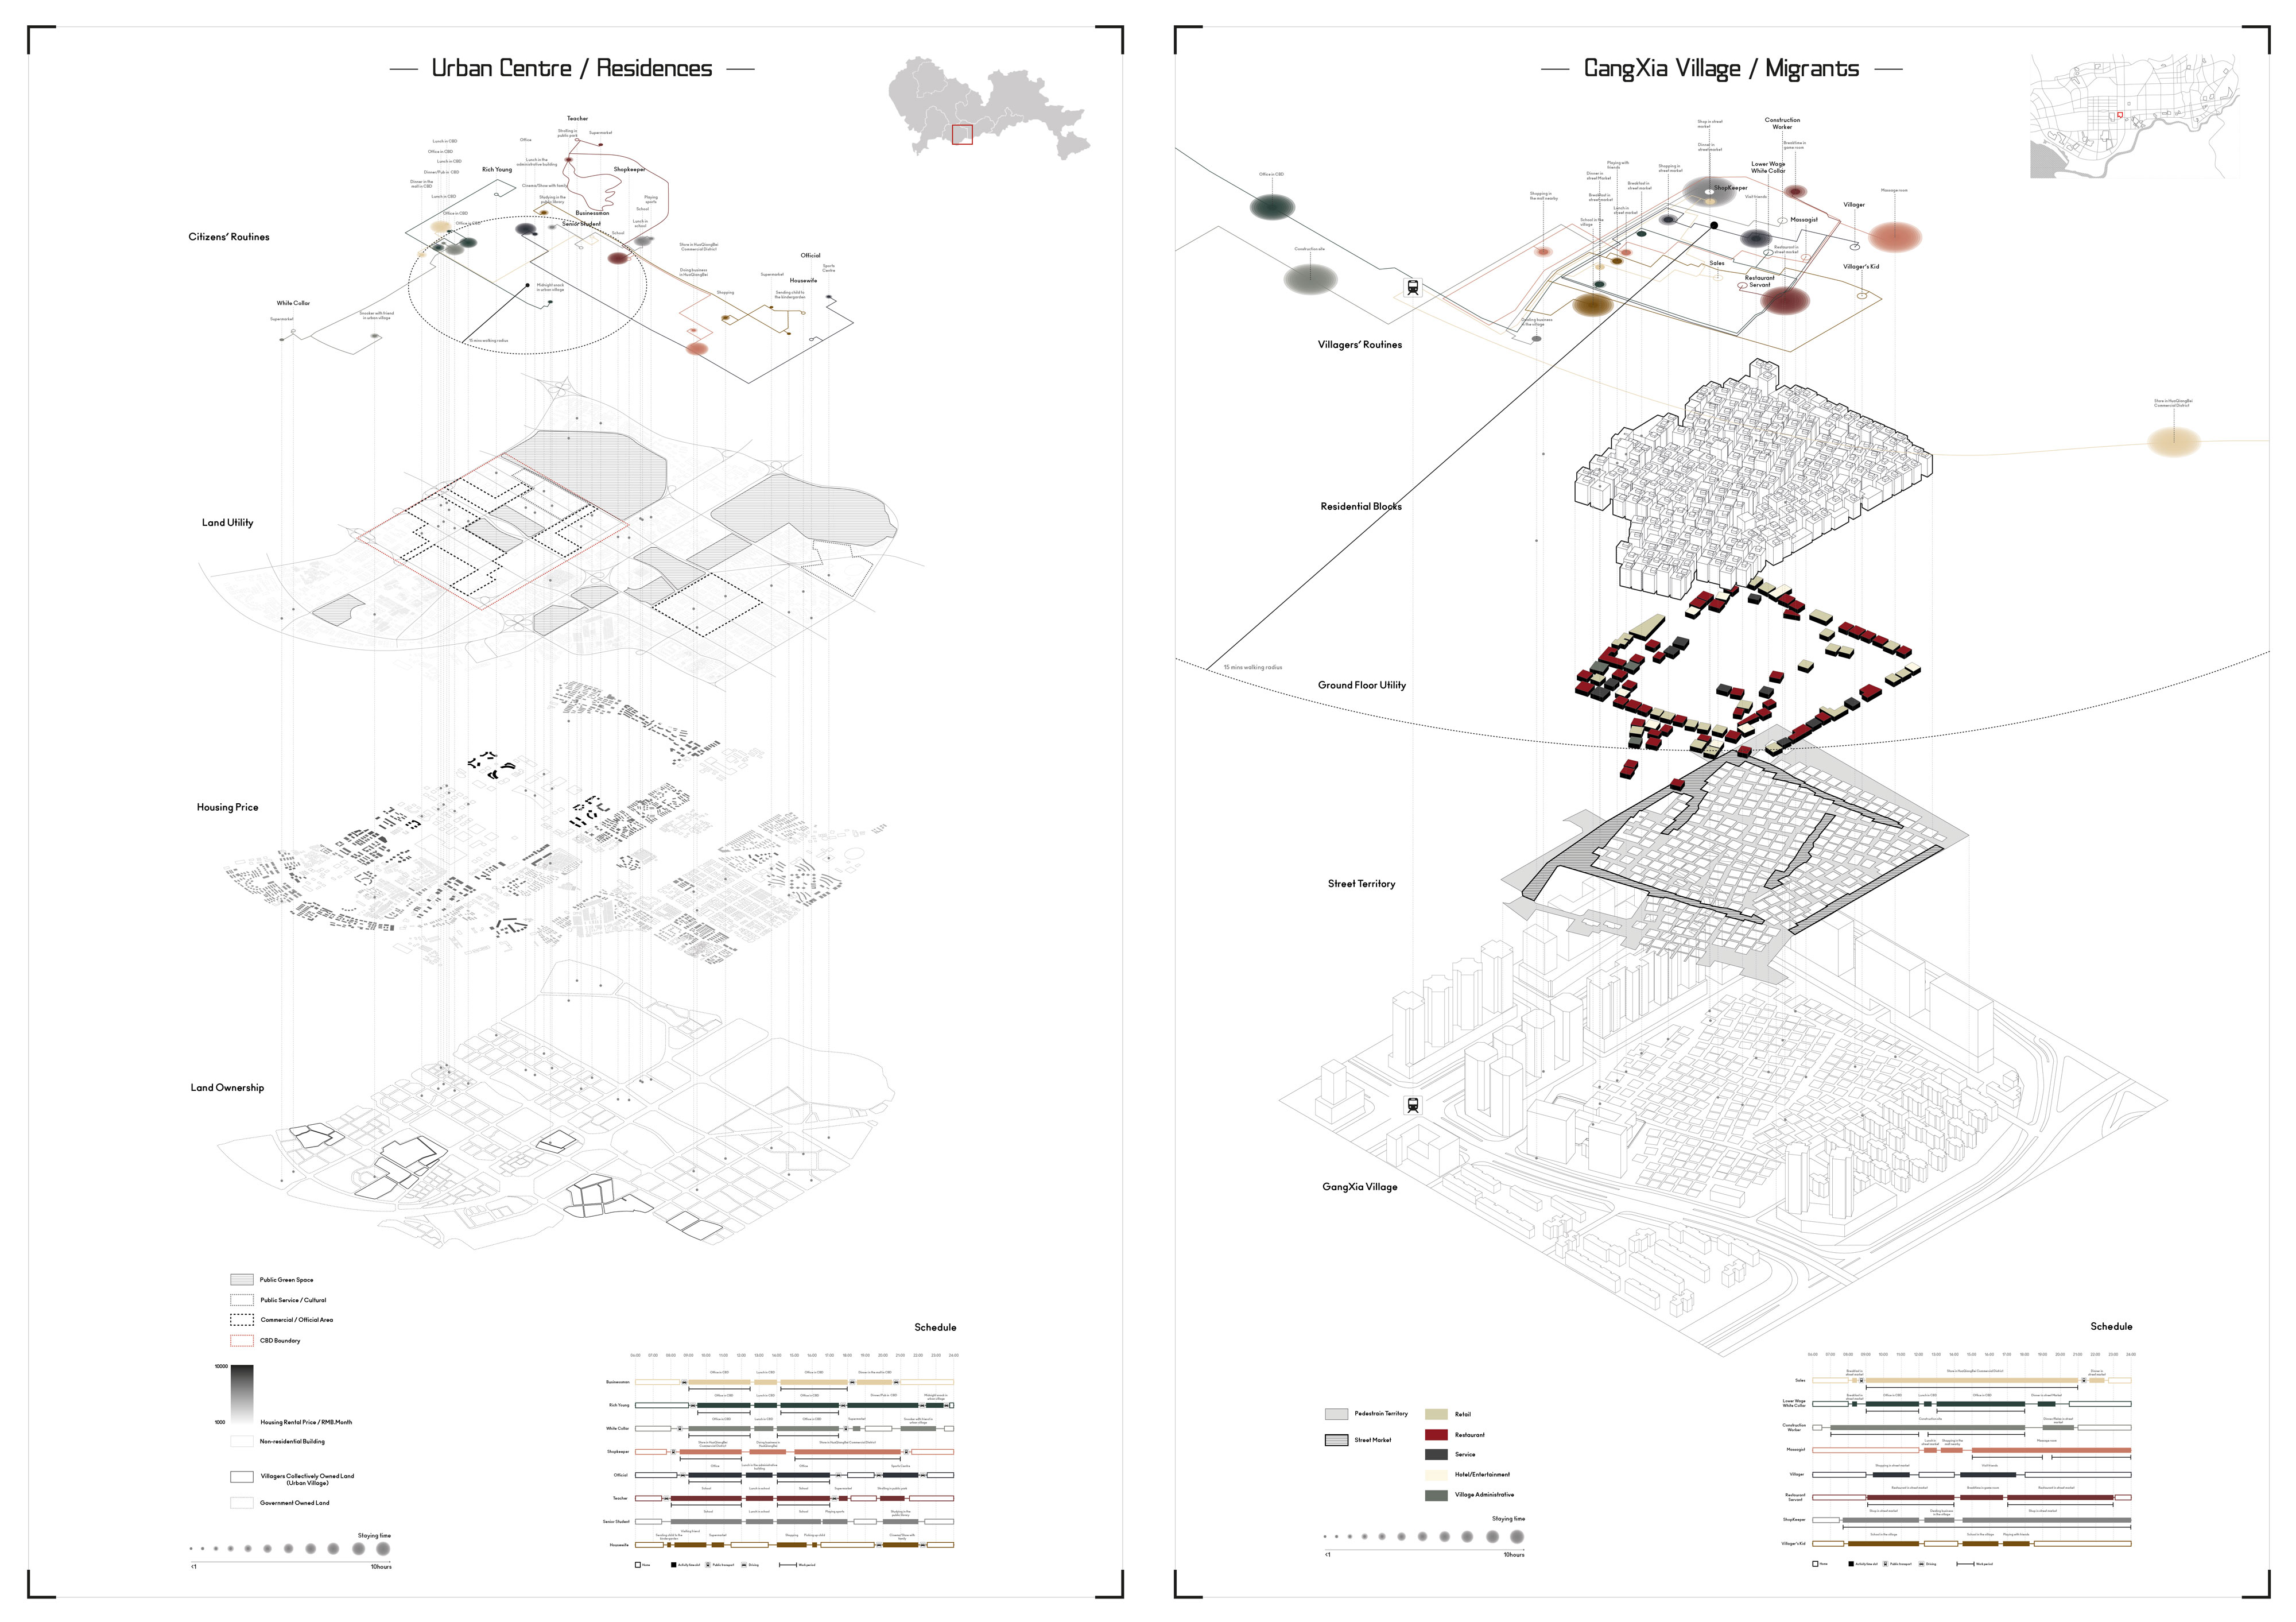 AA School of Architecture 2014 - Li Zhang